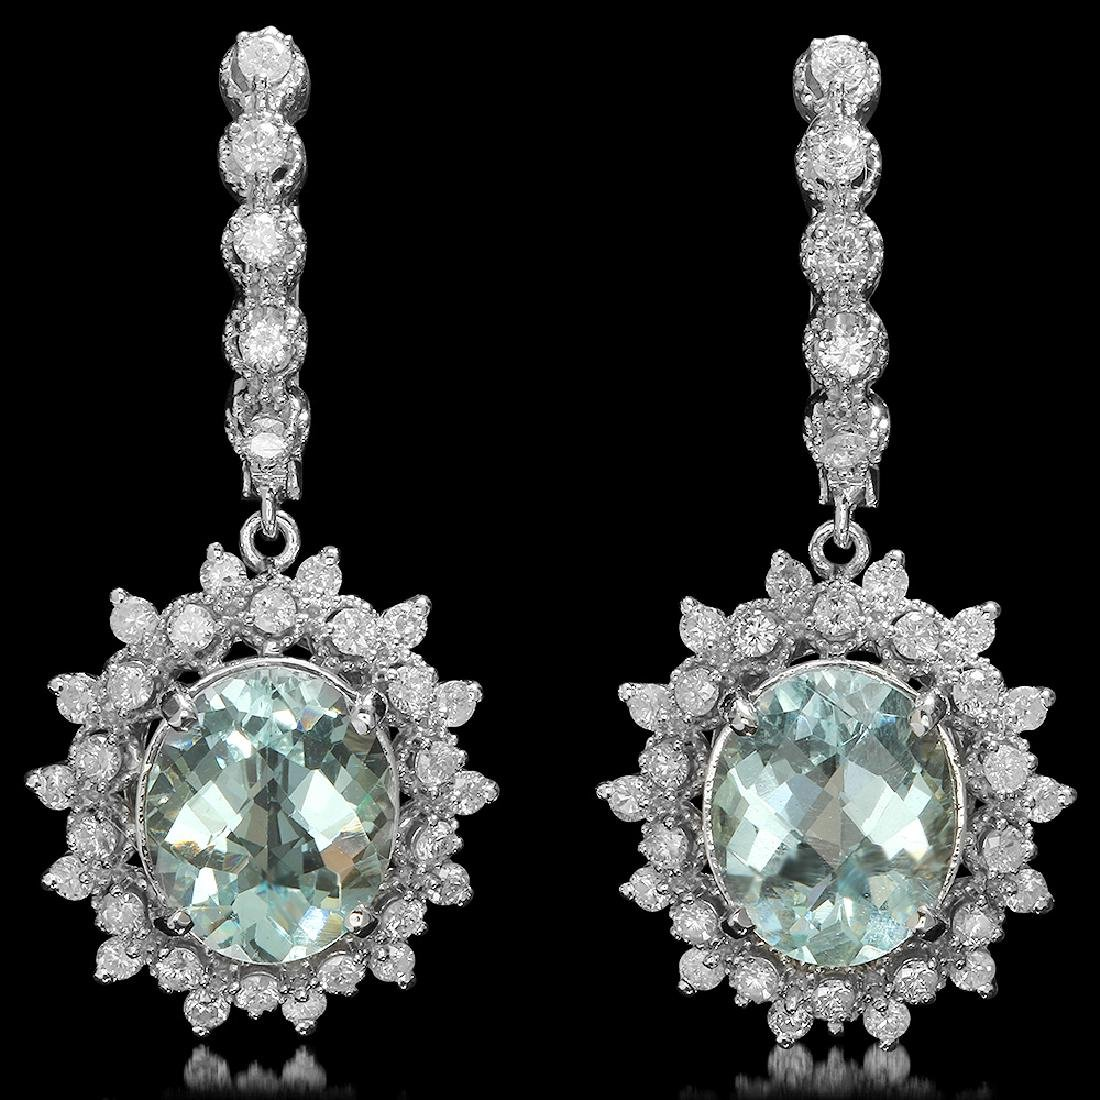 14K Gold 6.28ct Aquamarine 1.60ct Diamond Earrings